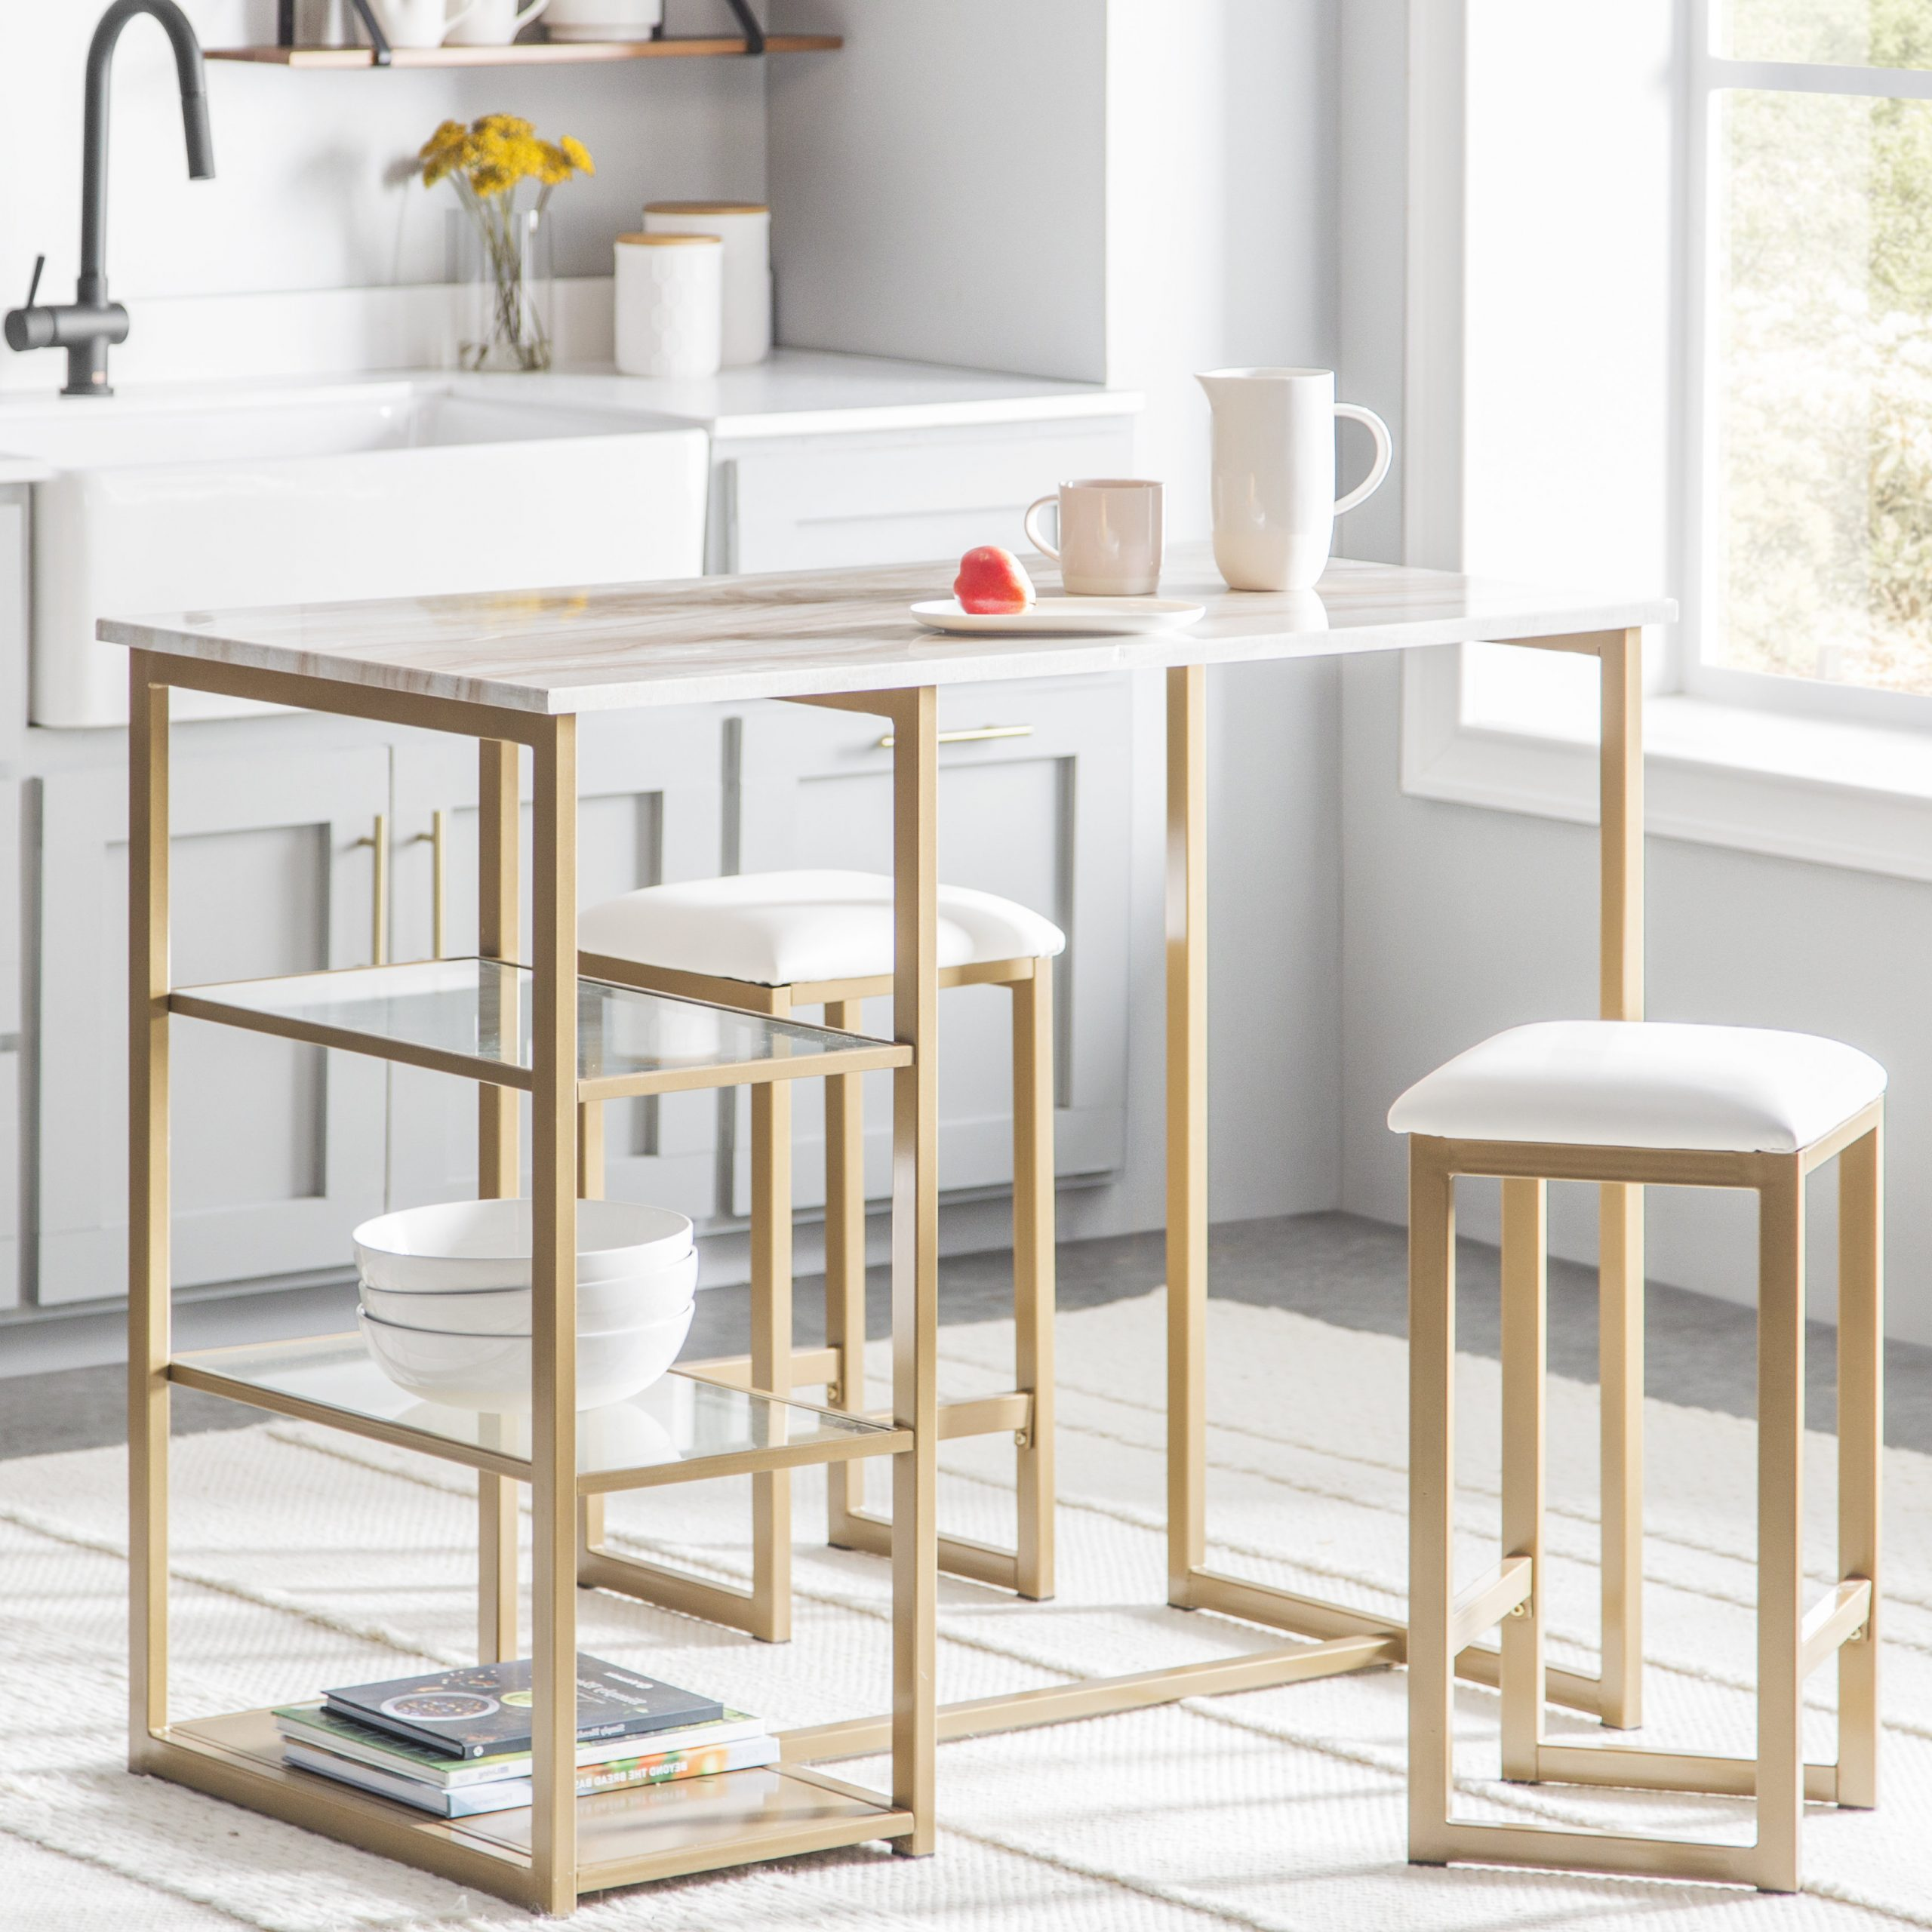 Favorite 3 Piece Dining Table And Chairs Aspiration Modern Intended For 3 Pieces Dining Tables And Chair Set (View 4 of 30)